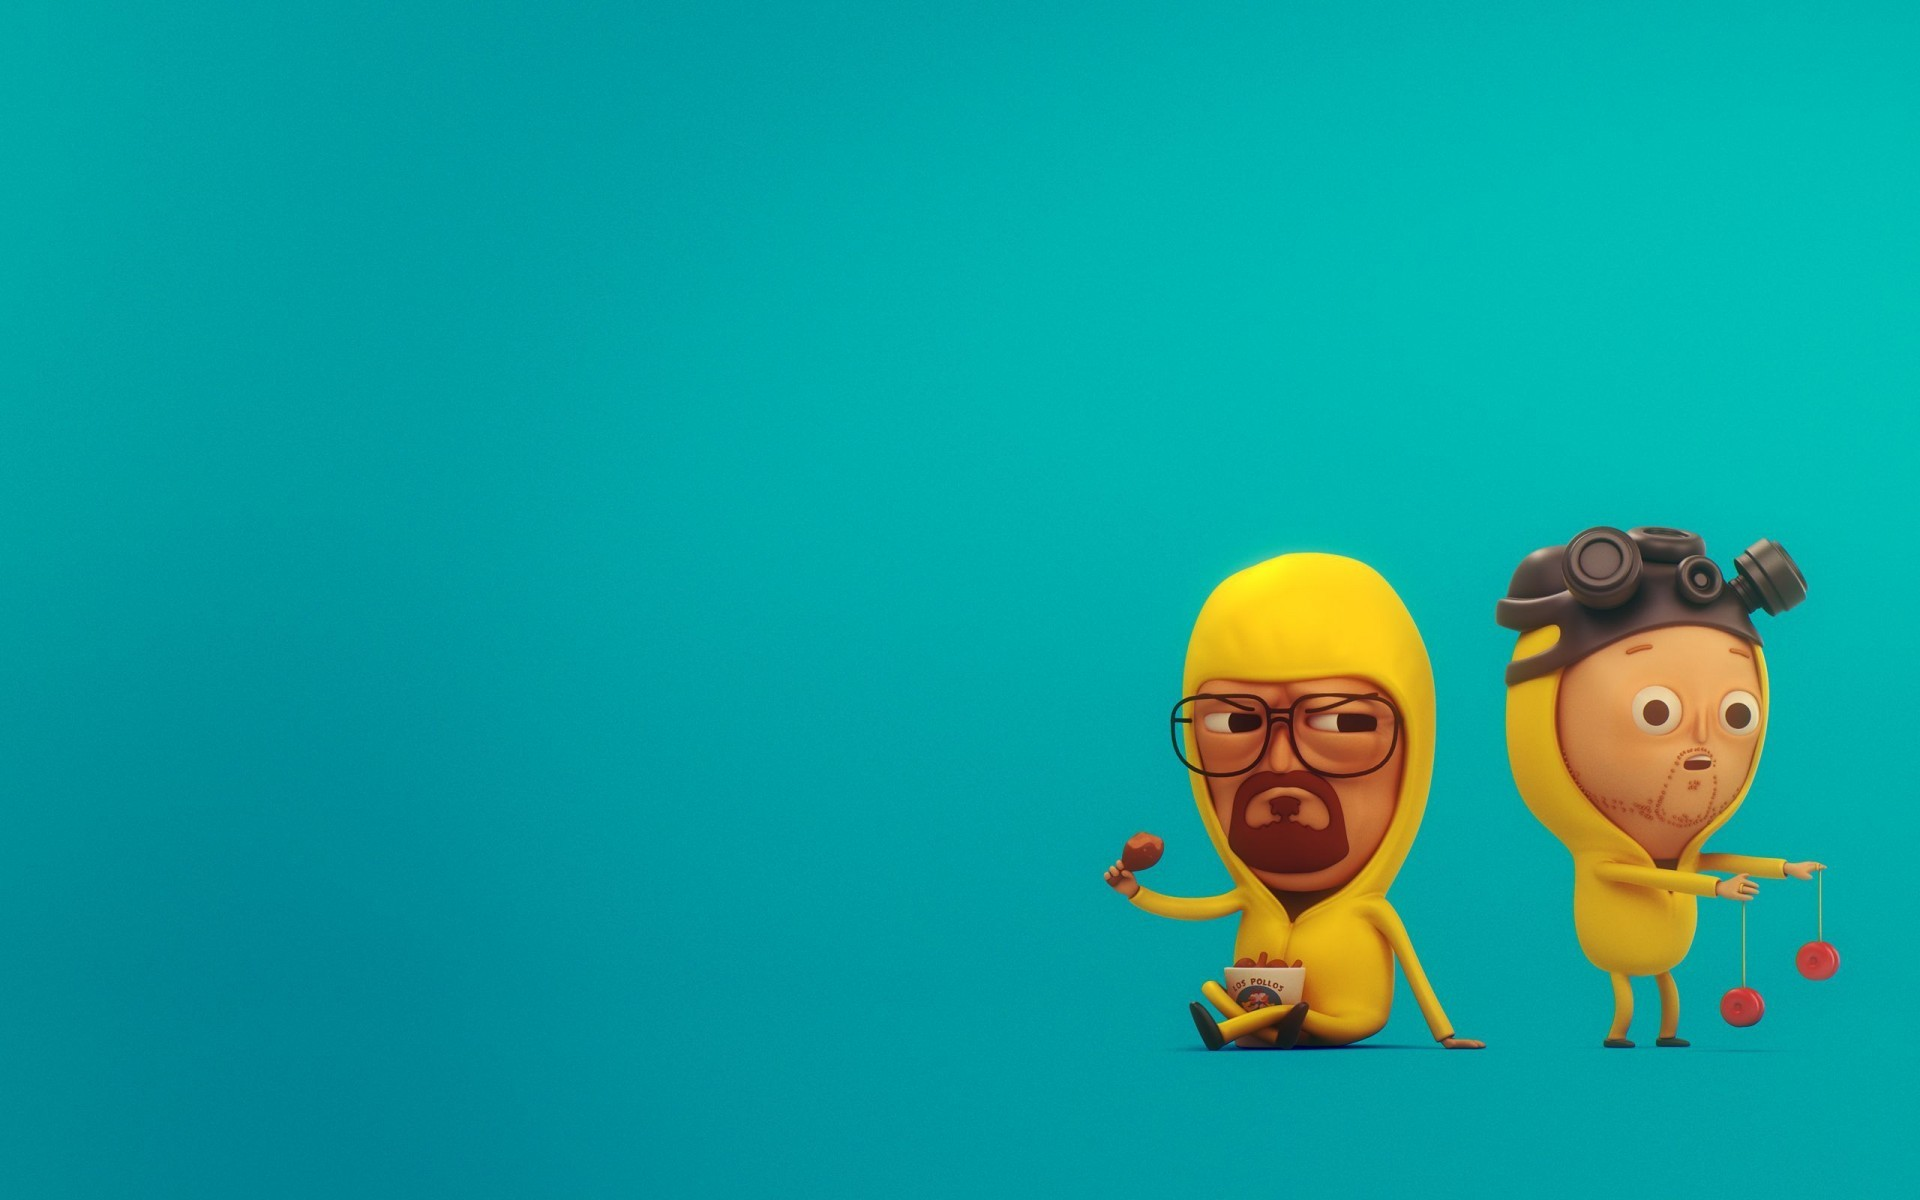 1920x1200 Breaking Bad Season 5 Minion HD Desktop Wallpaper